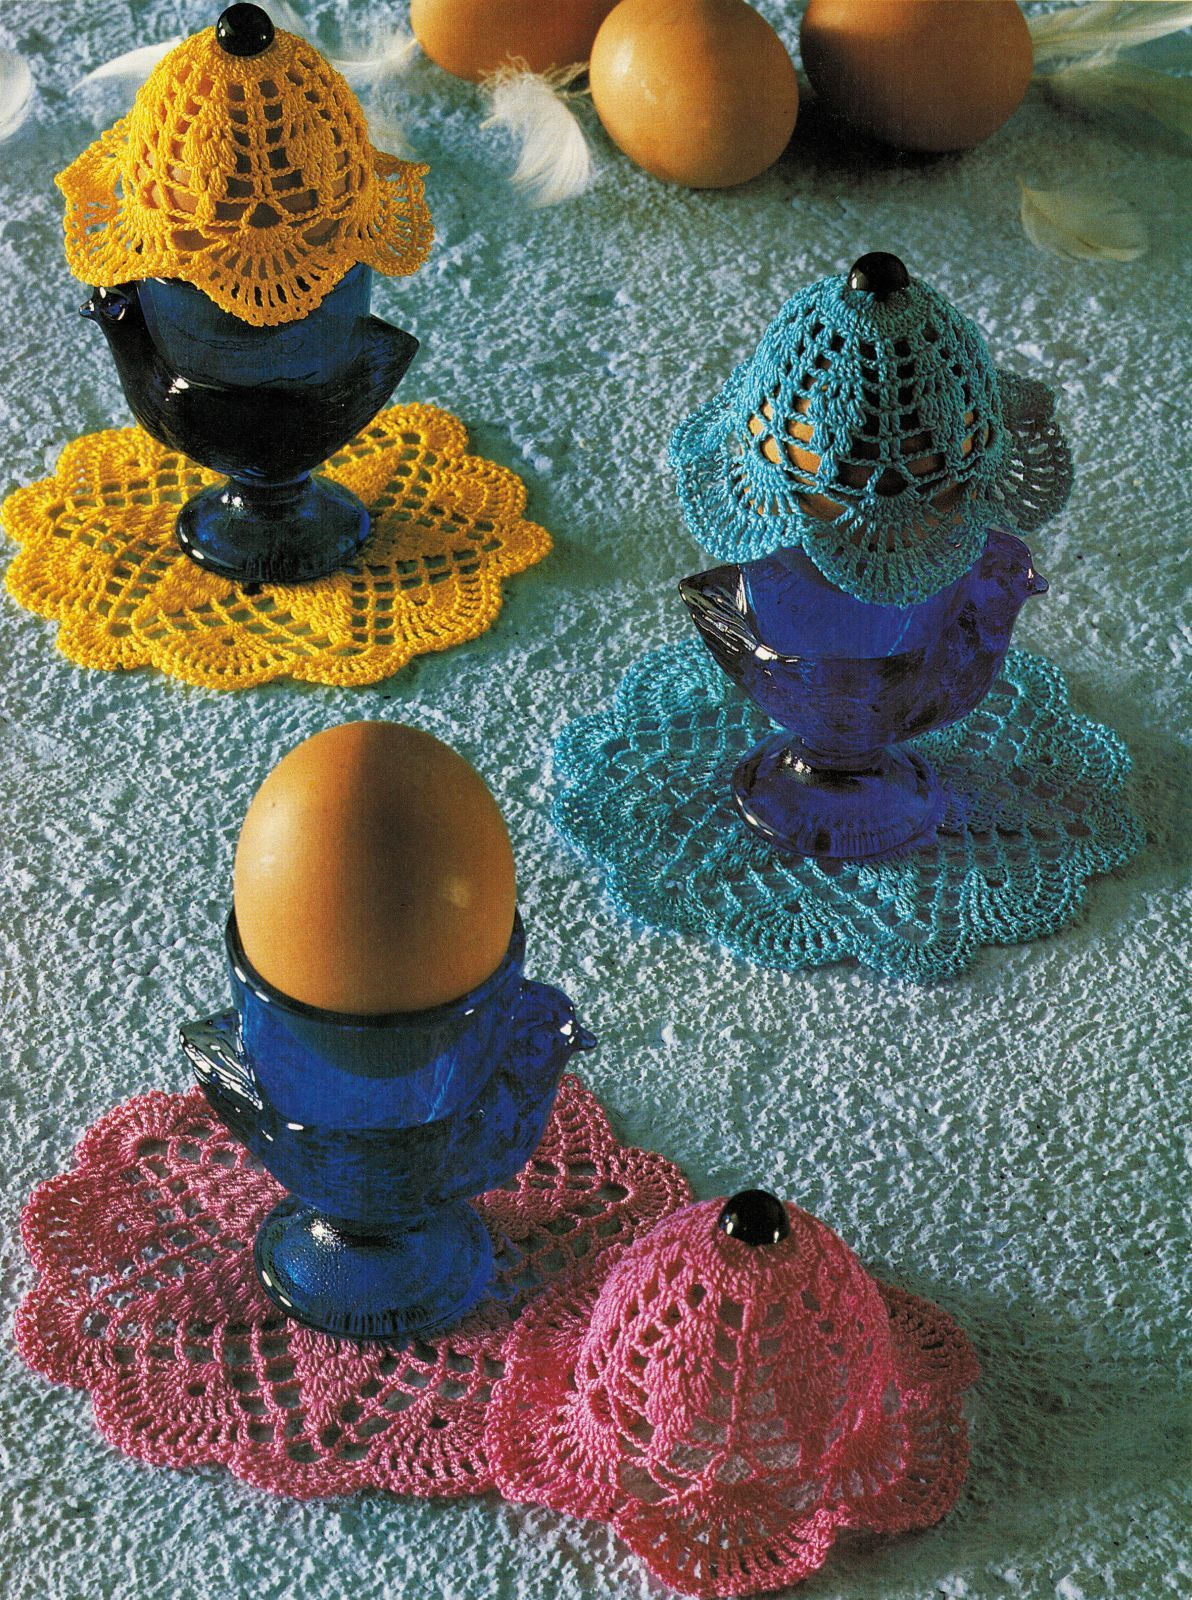 Round Table Placemats Centerpiece Hot Pad Coaster Egg Warmers Crochet Patterns - $8.99